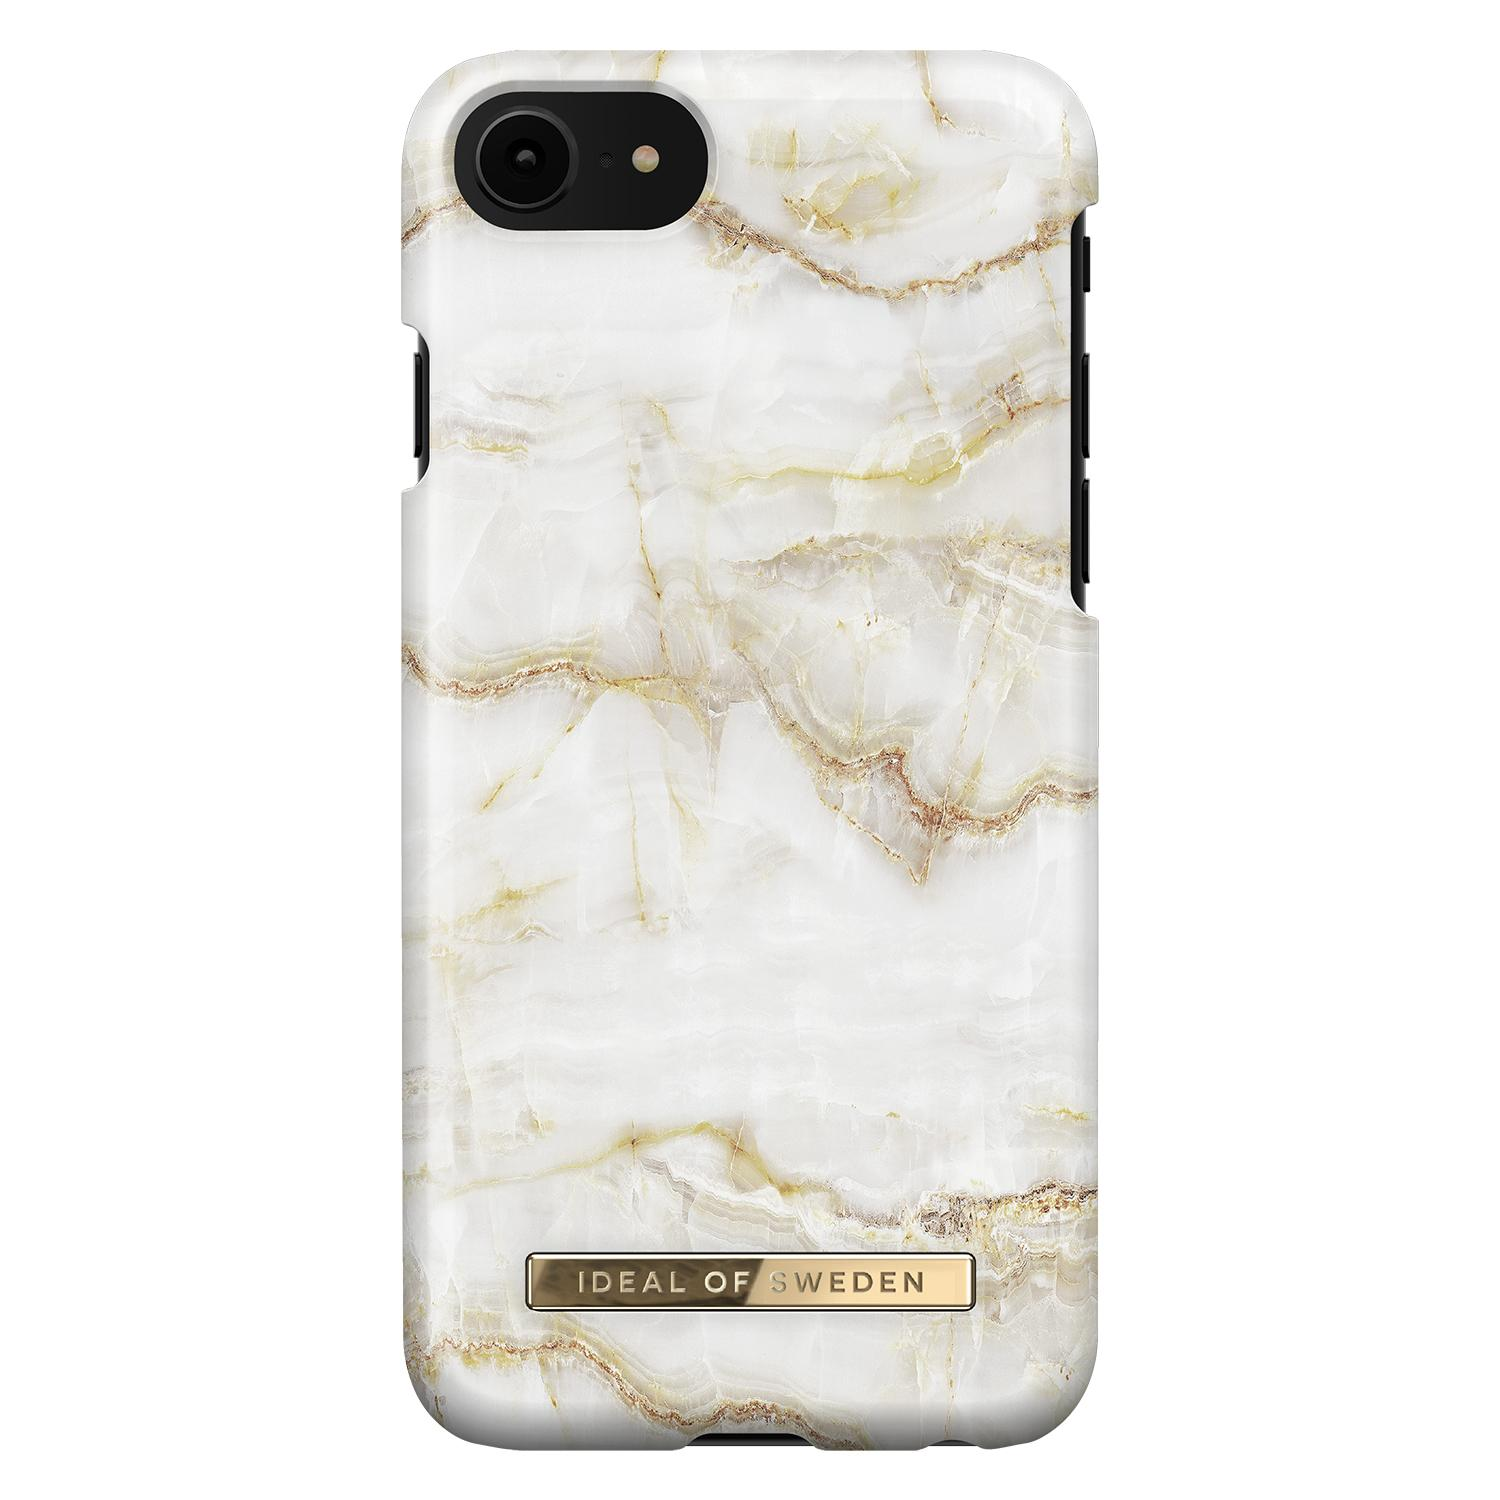 Fashion Case iPhone 6/6S/7/8/SE 2020 Golden Pearl Marble